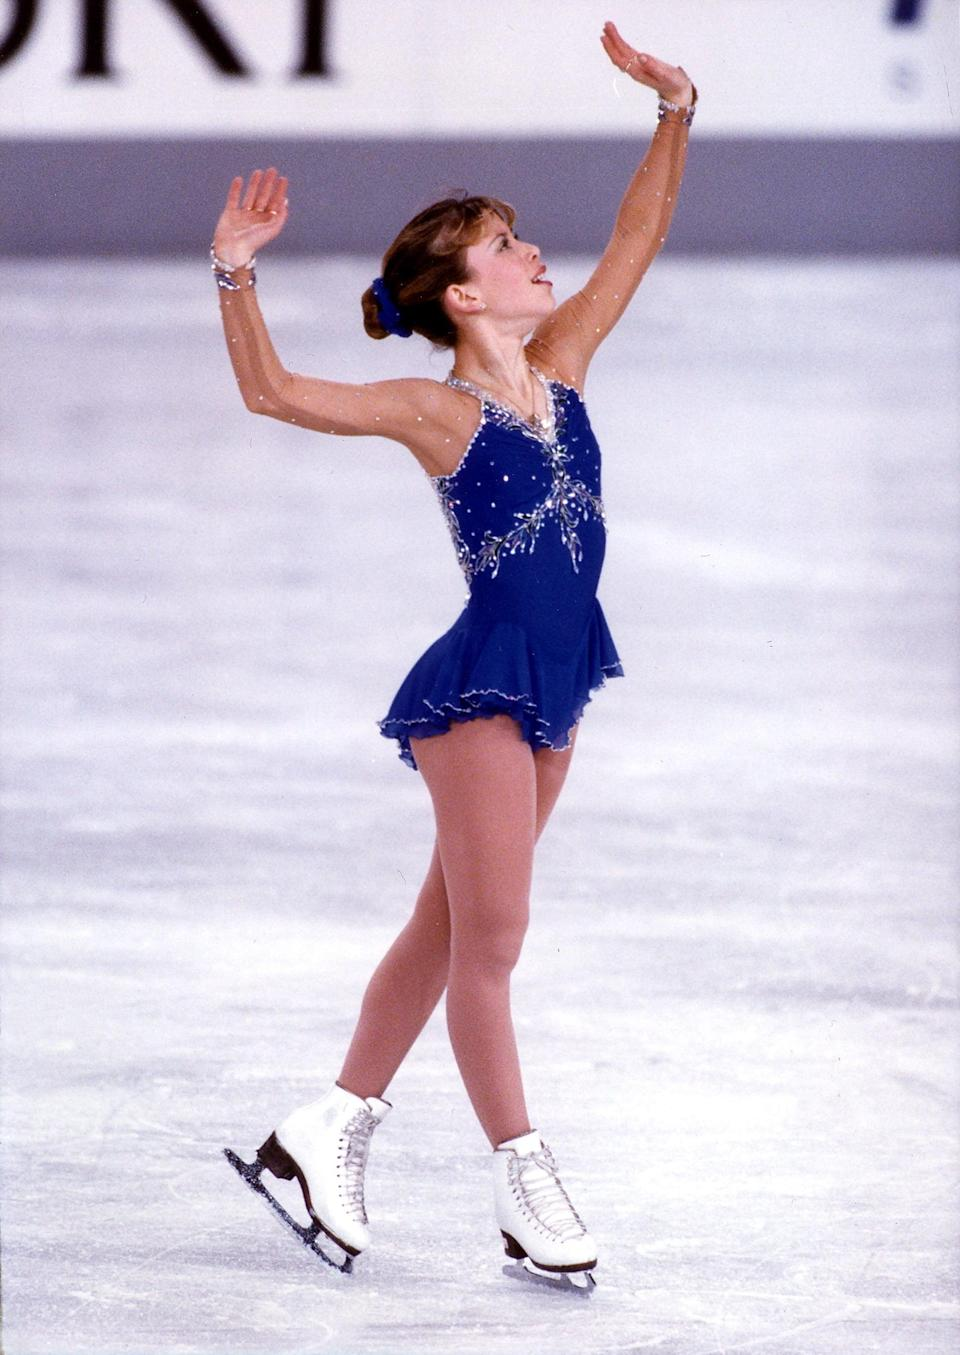 <p>Who can forget Tara Lipinski's cobalt blue embellished figure skating outfit, with intricate floral stitching and mesh sleeves stitched with rhinestones? She teamed it up with a blue scrunchie in the same shade for the 1998 Olympic winter games in Nagano, Japan, where she won gold and became the youngest gold medalist in women's figure skating.</p>